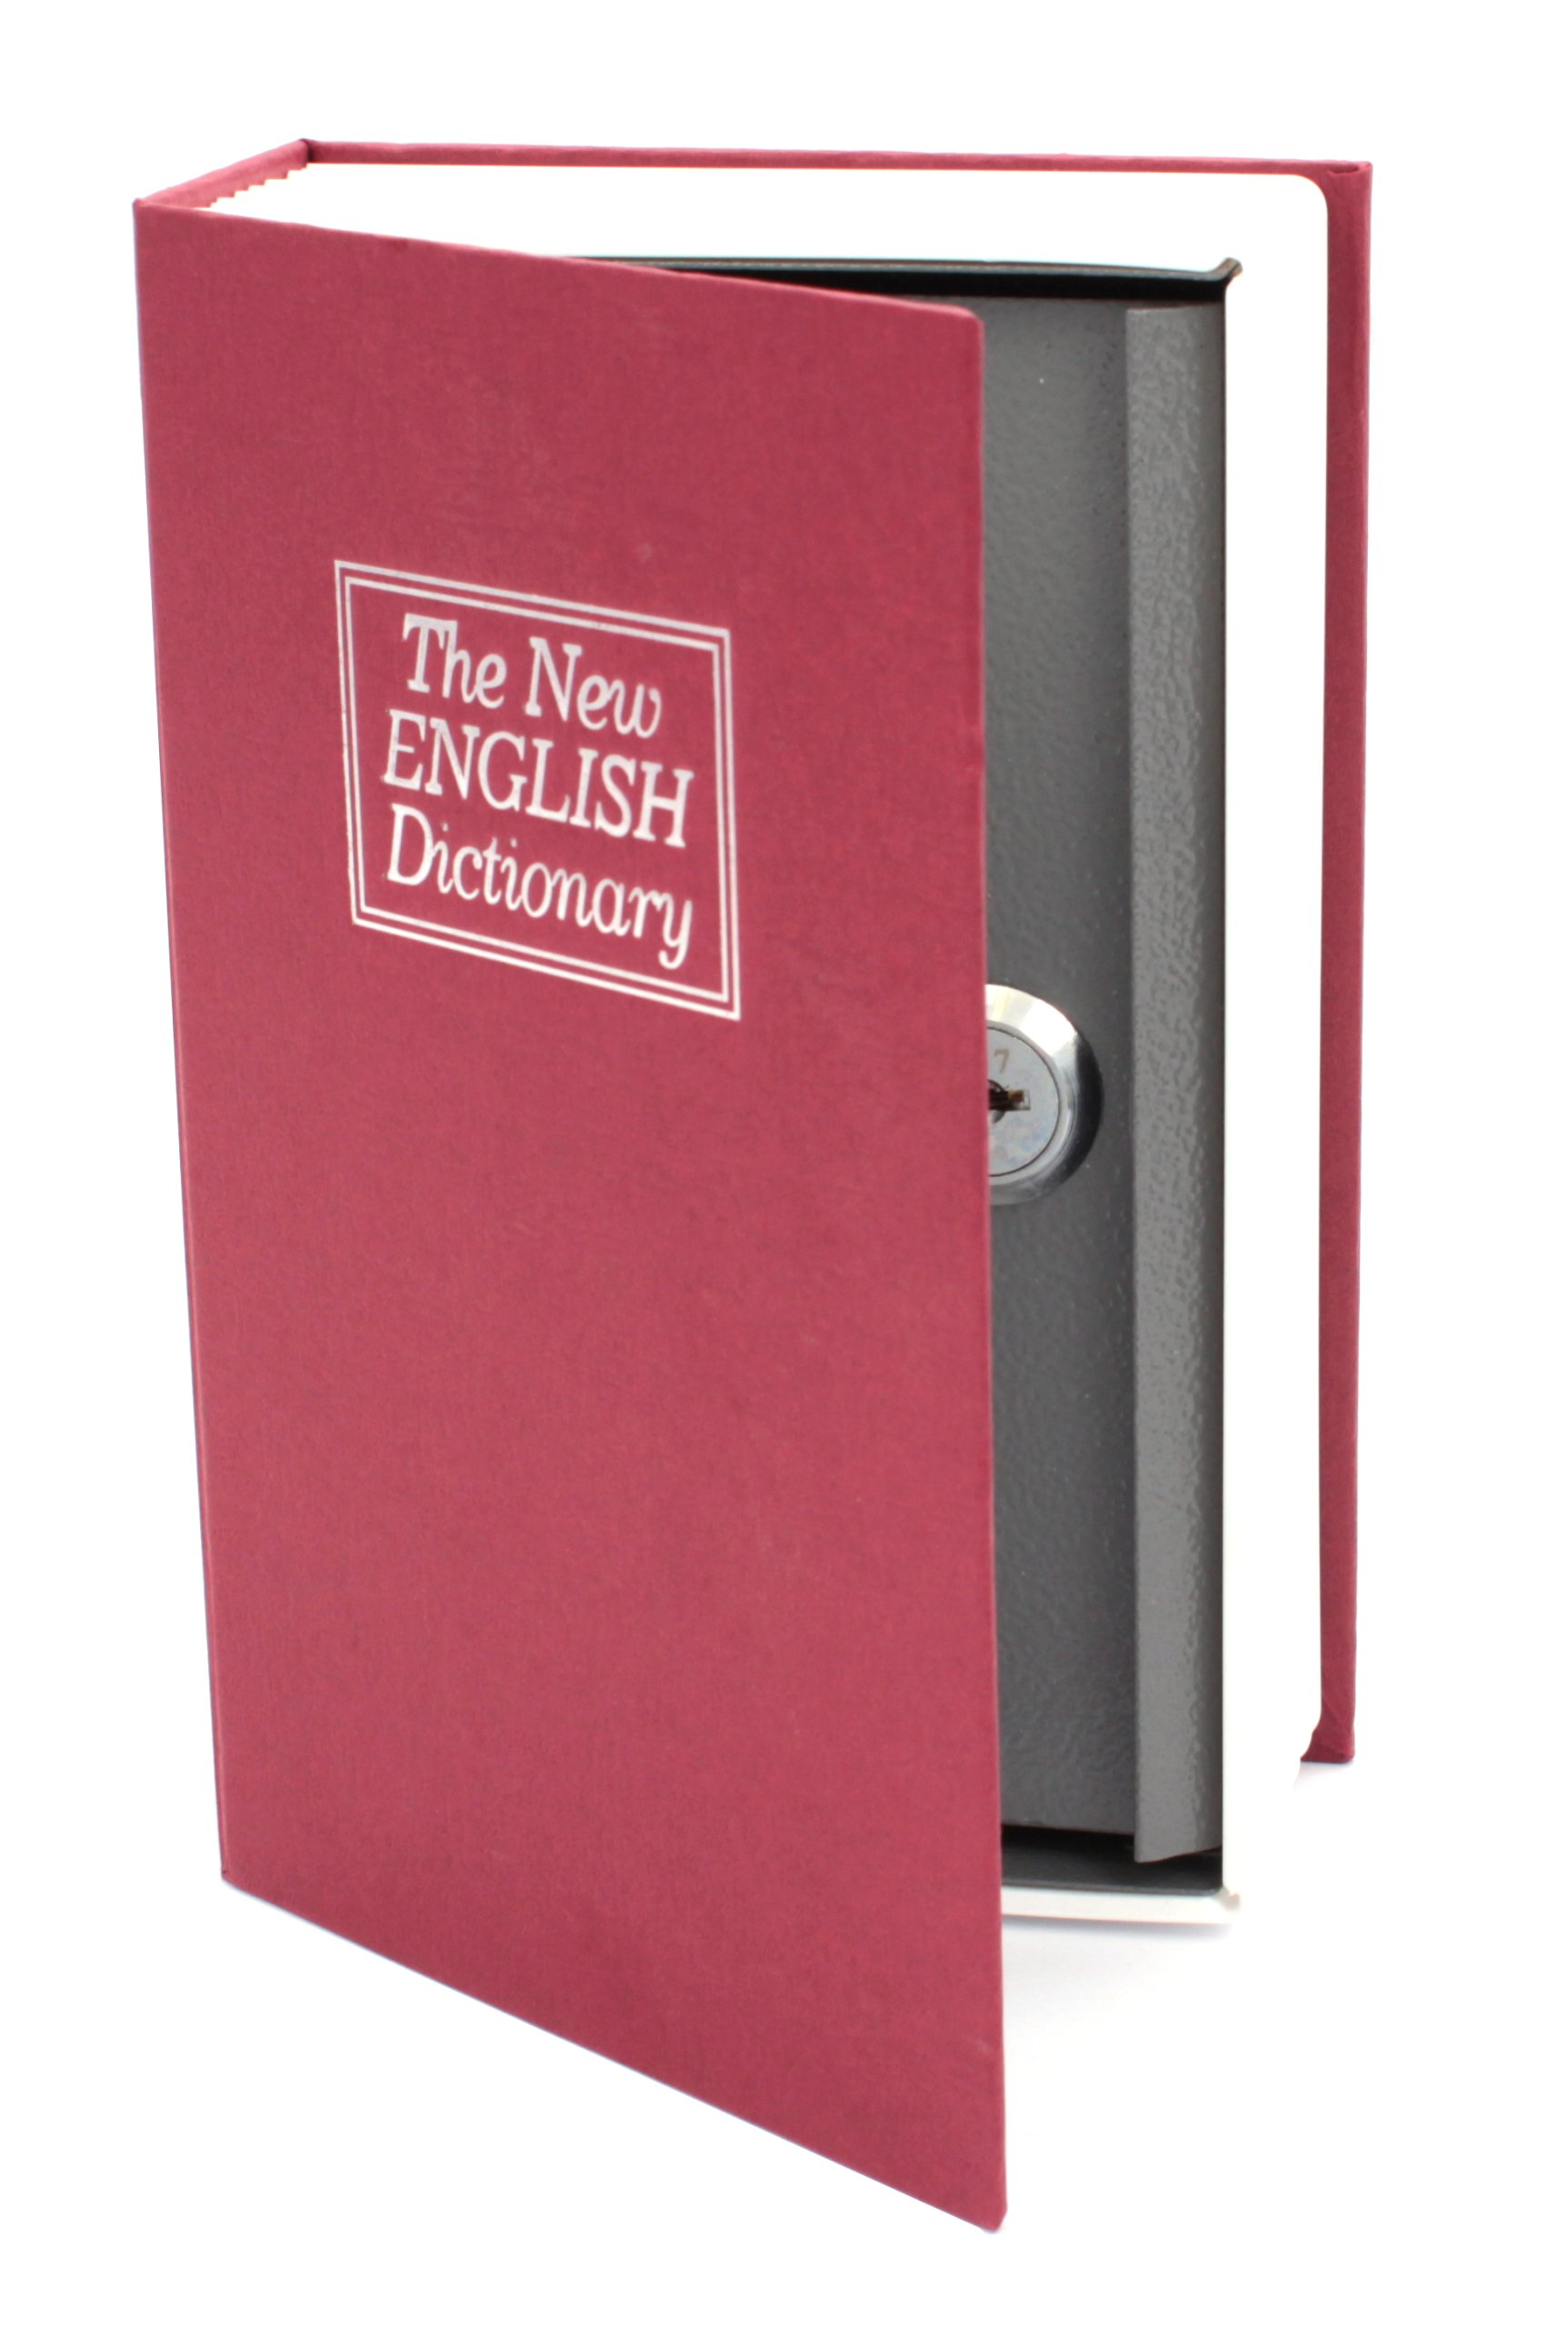 Item CONTAINER METAL BOOK SAFE MONEY DICTIONARY